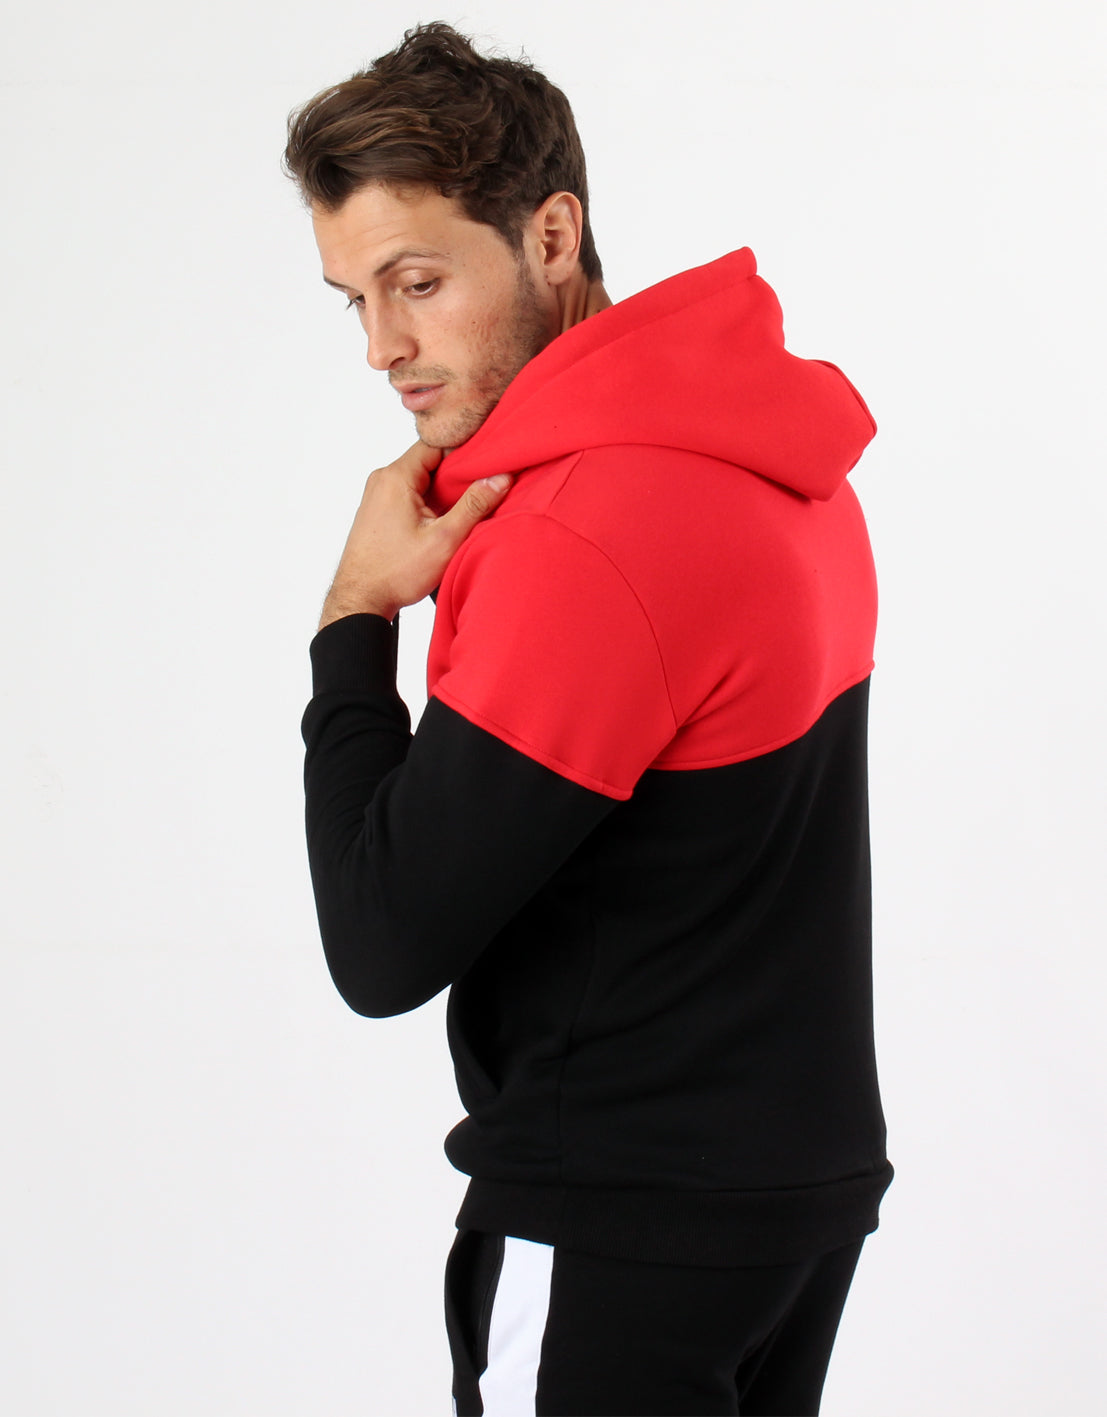 Dual Hoodie - Red/Black - 2 Addictive